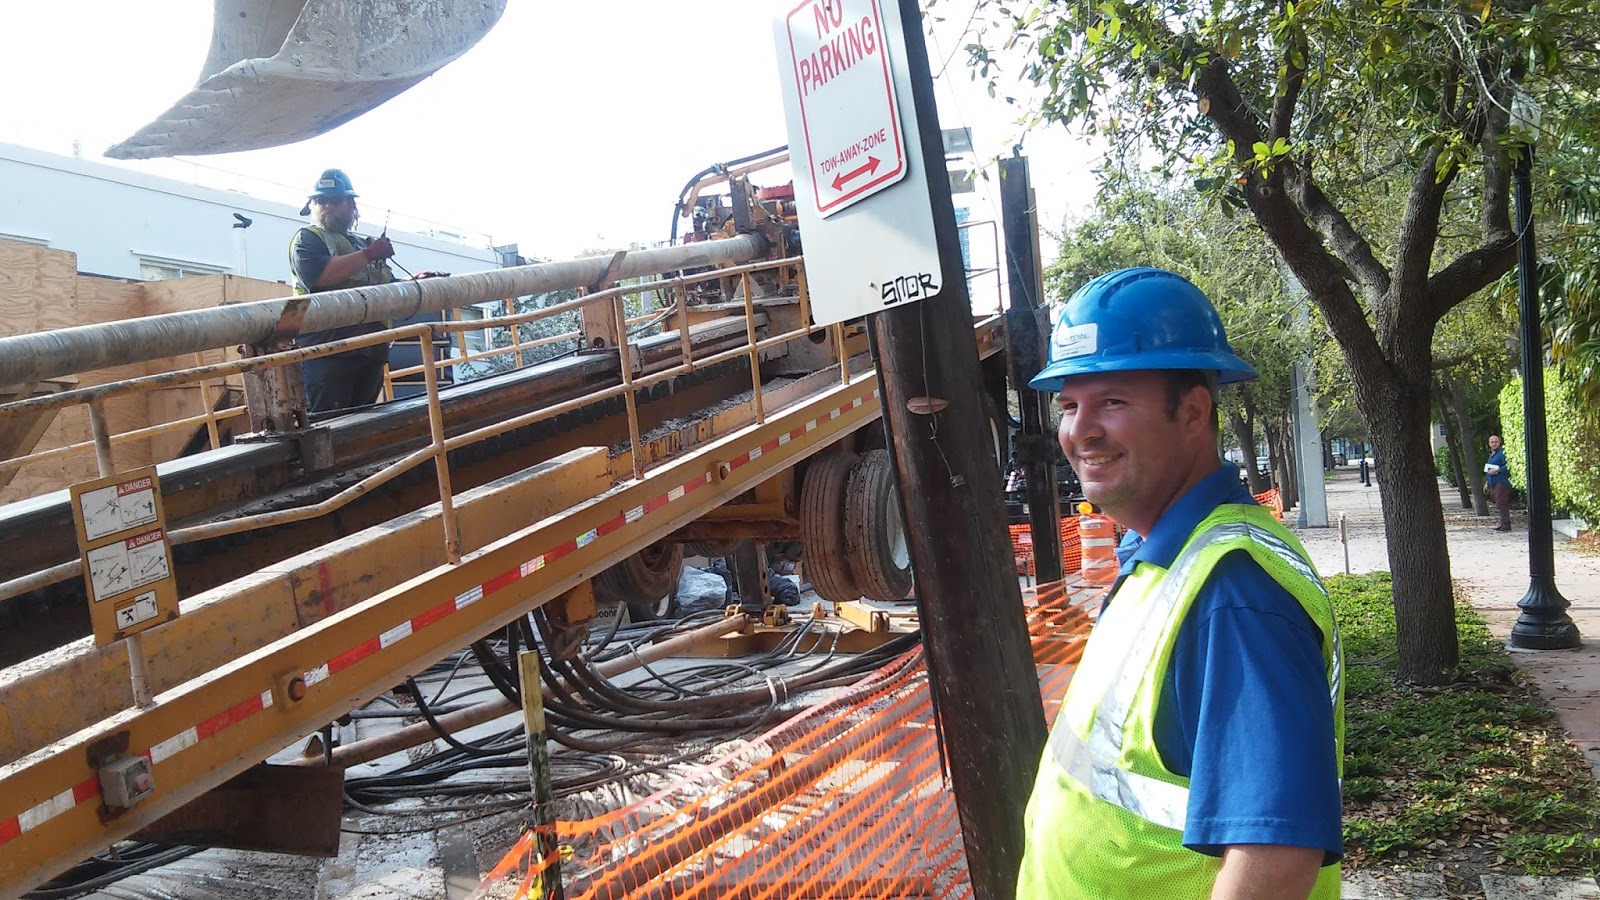 The Phenomenal South Beach Sewer Pipe Pullback | The Miami Mirror